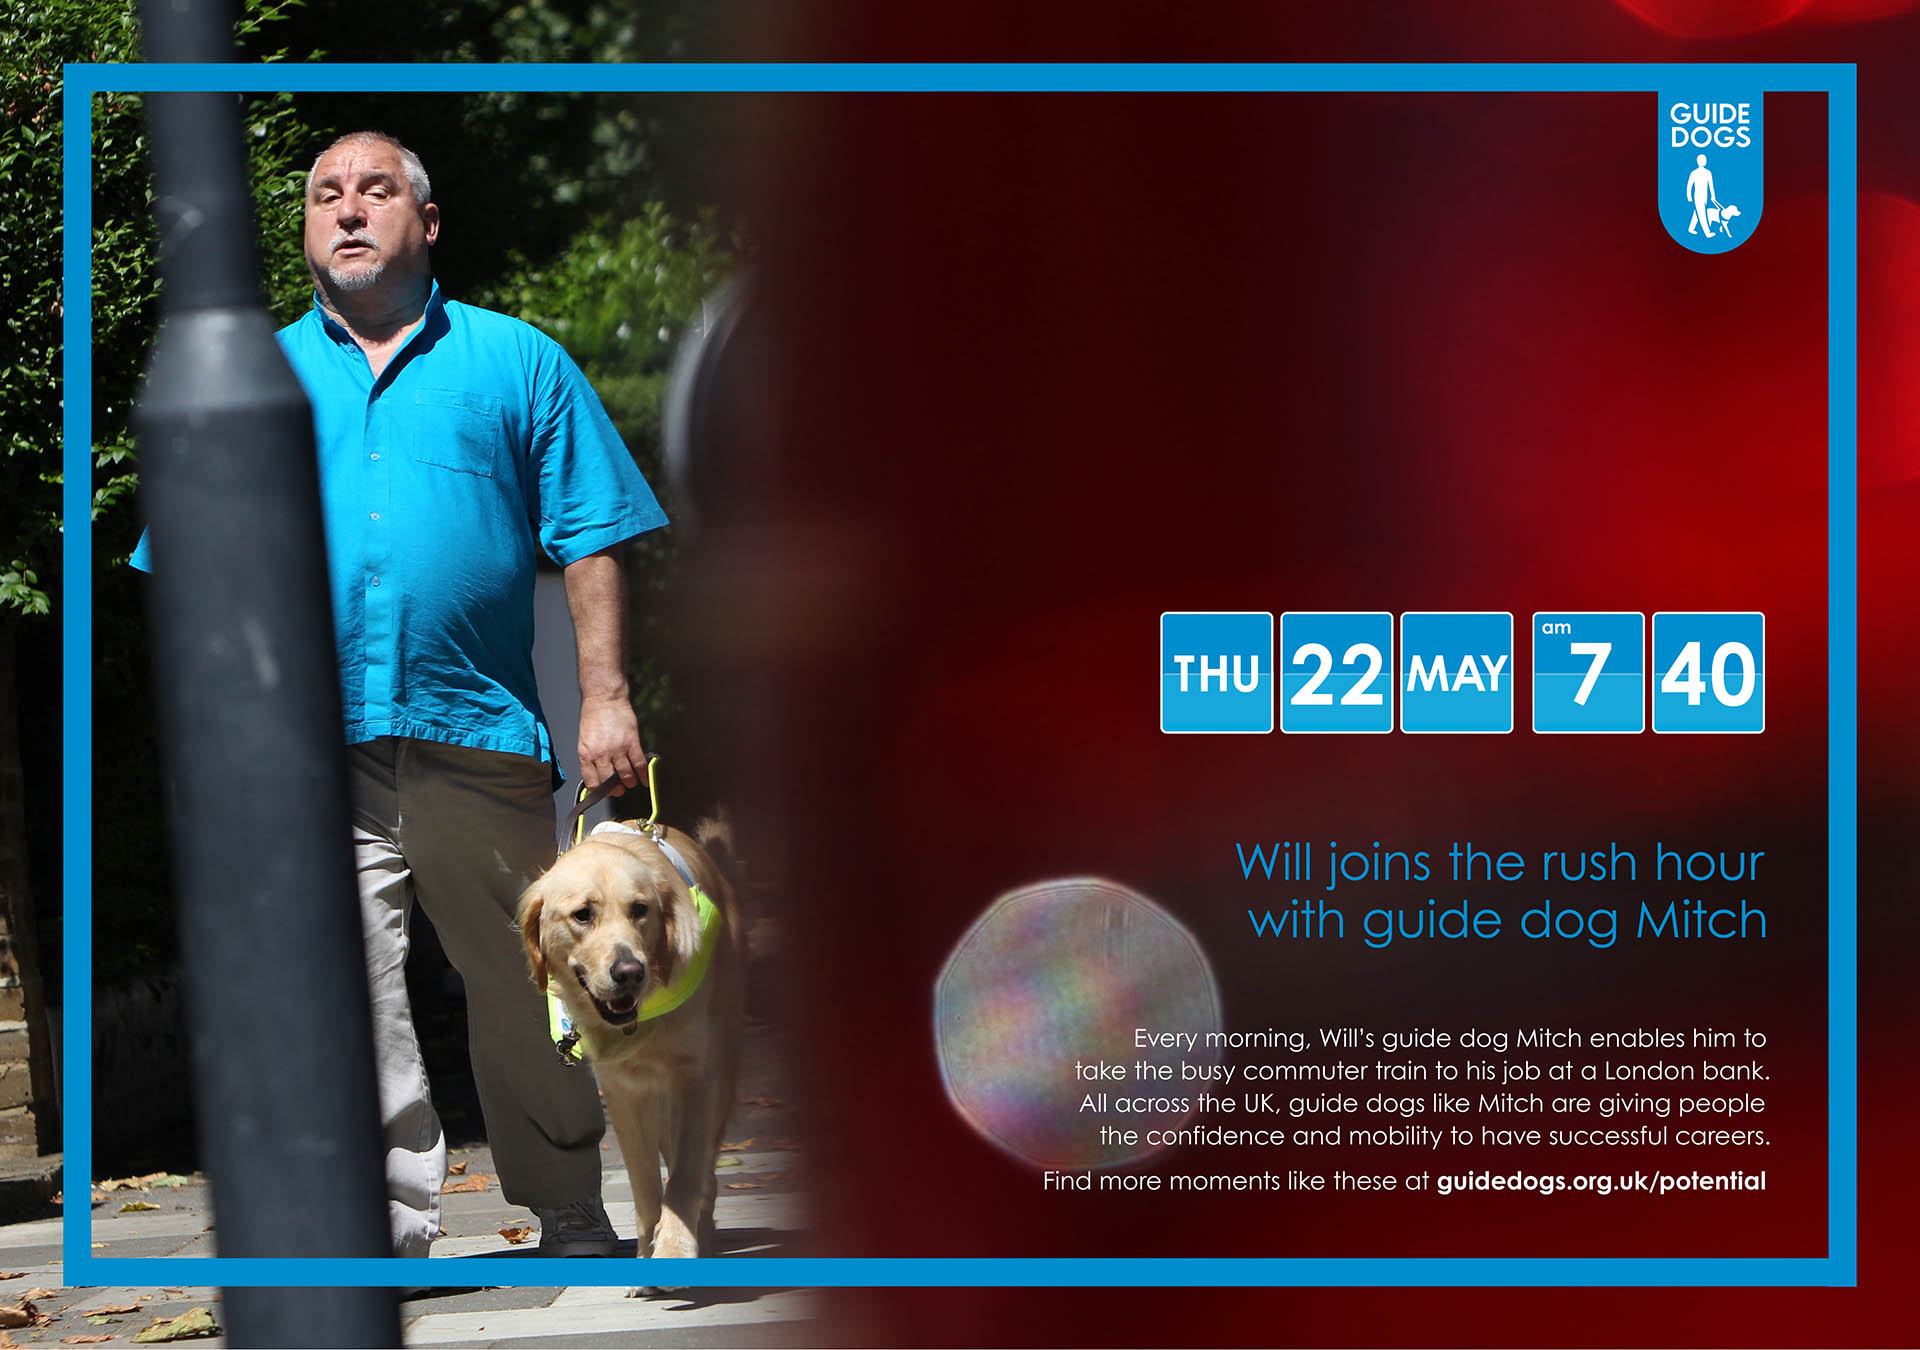 Simon_GuideDogs_Dave